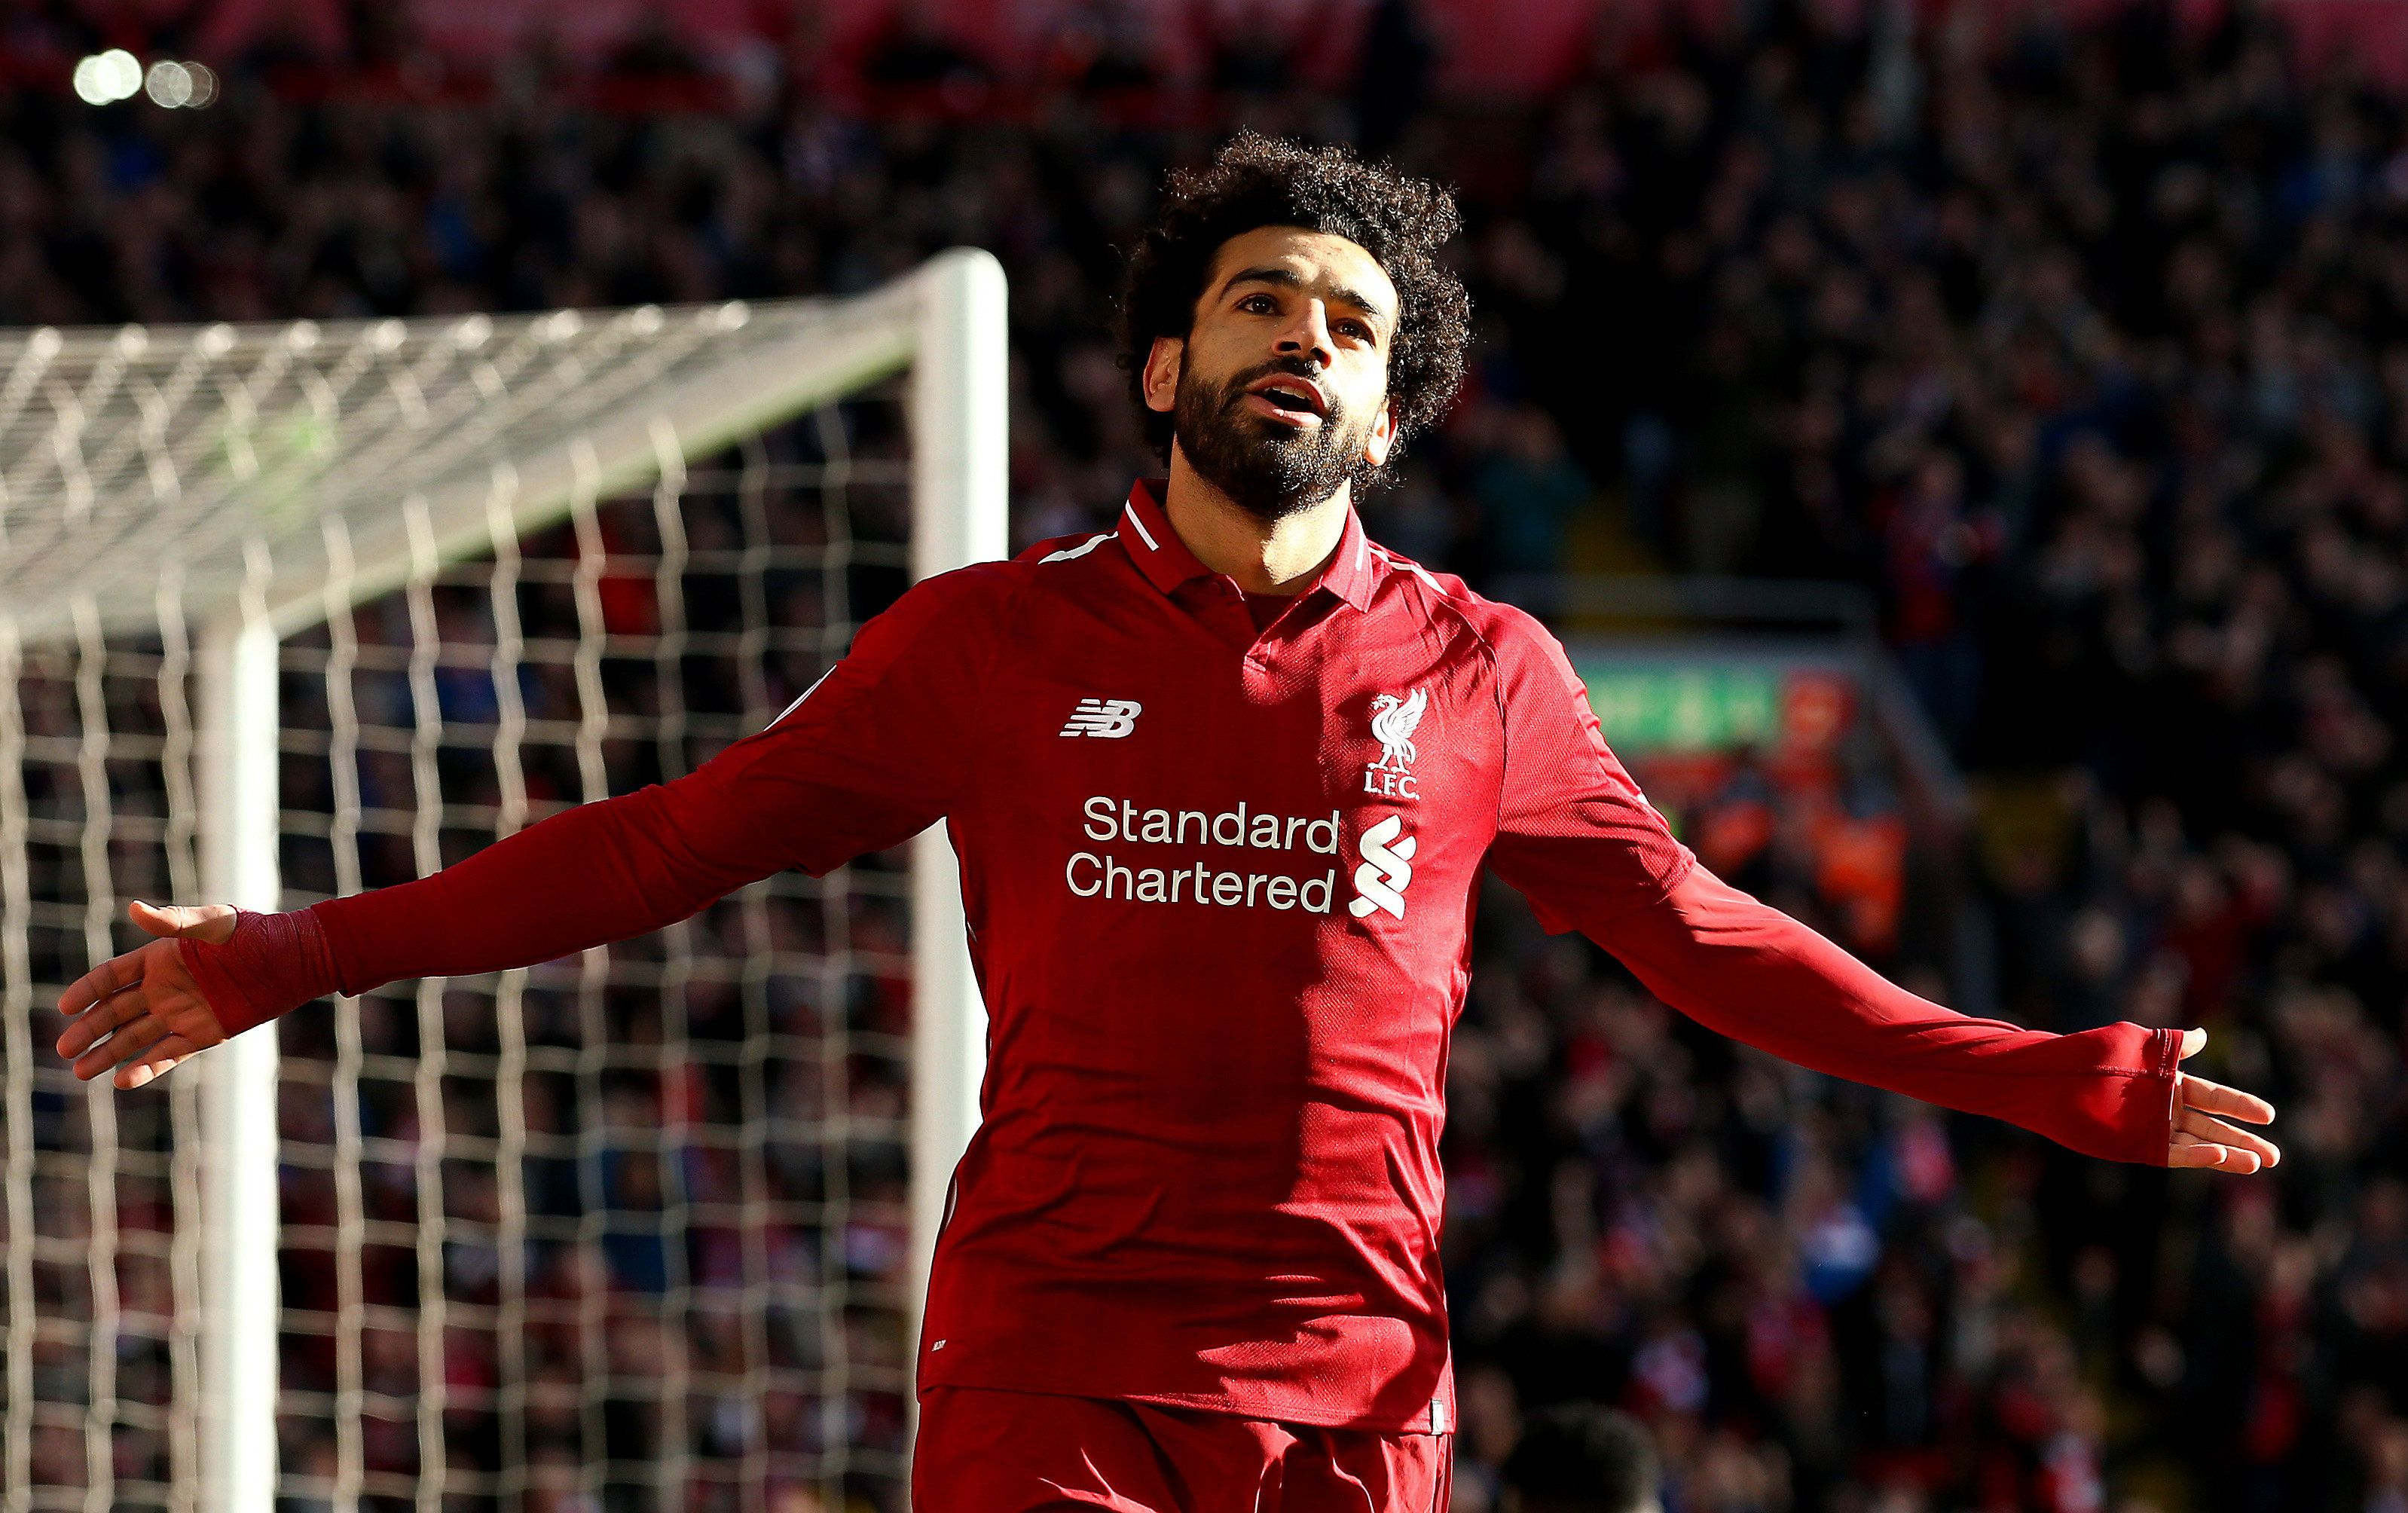 Mo Salah Or Leo Sayer? We Need To Talk About This New